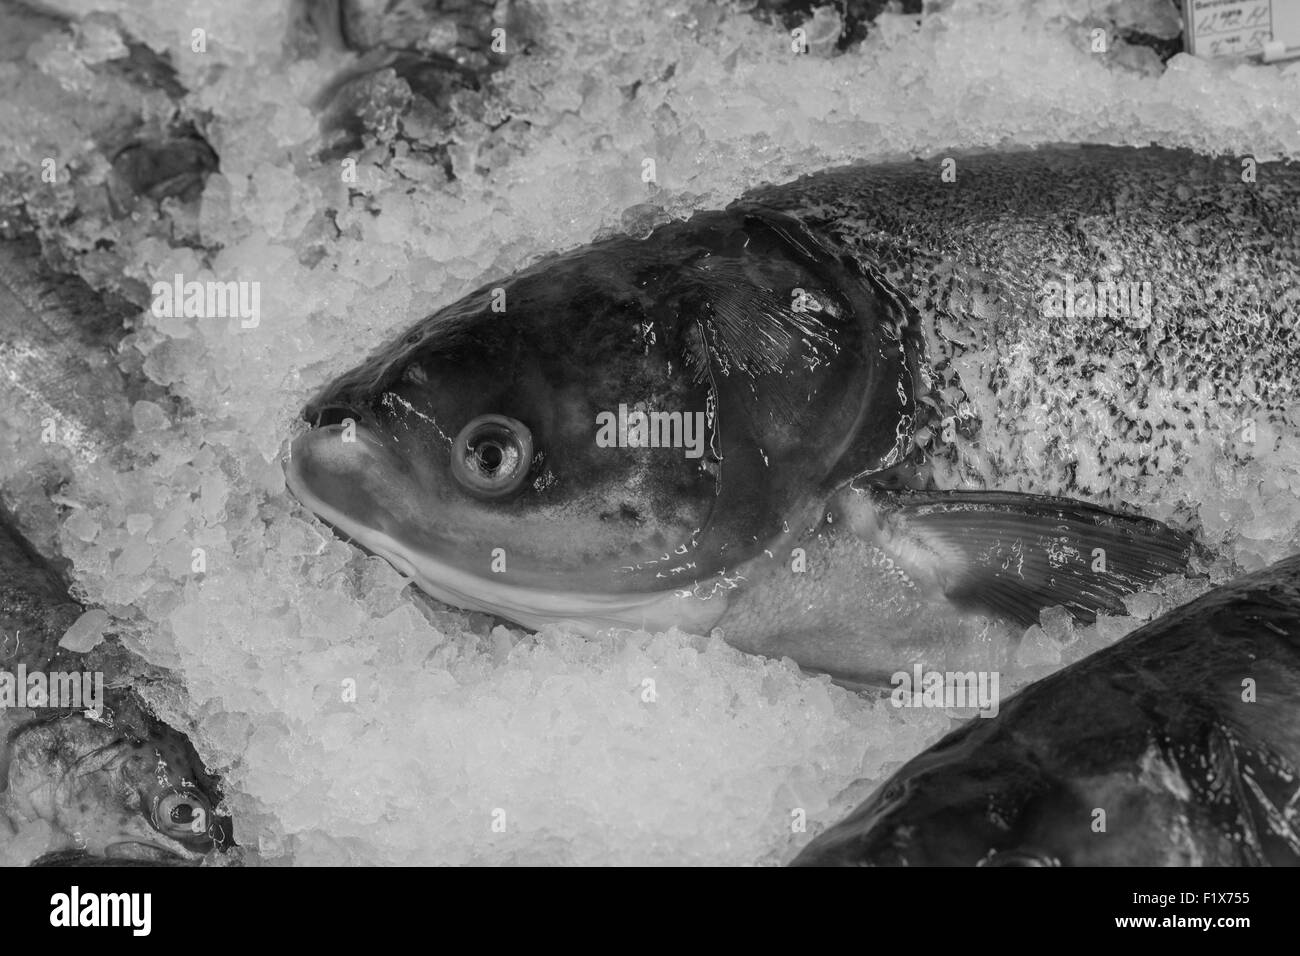 fish on the ice. - Stock Image